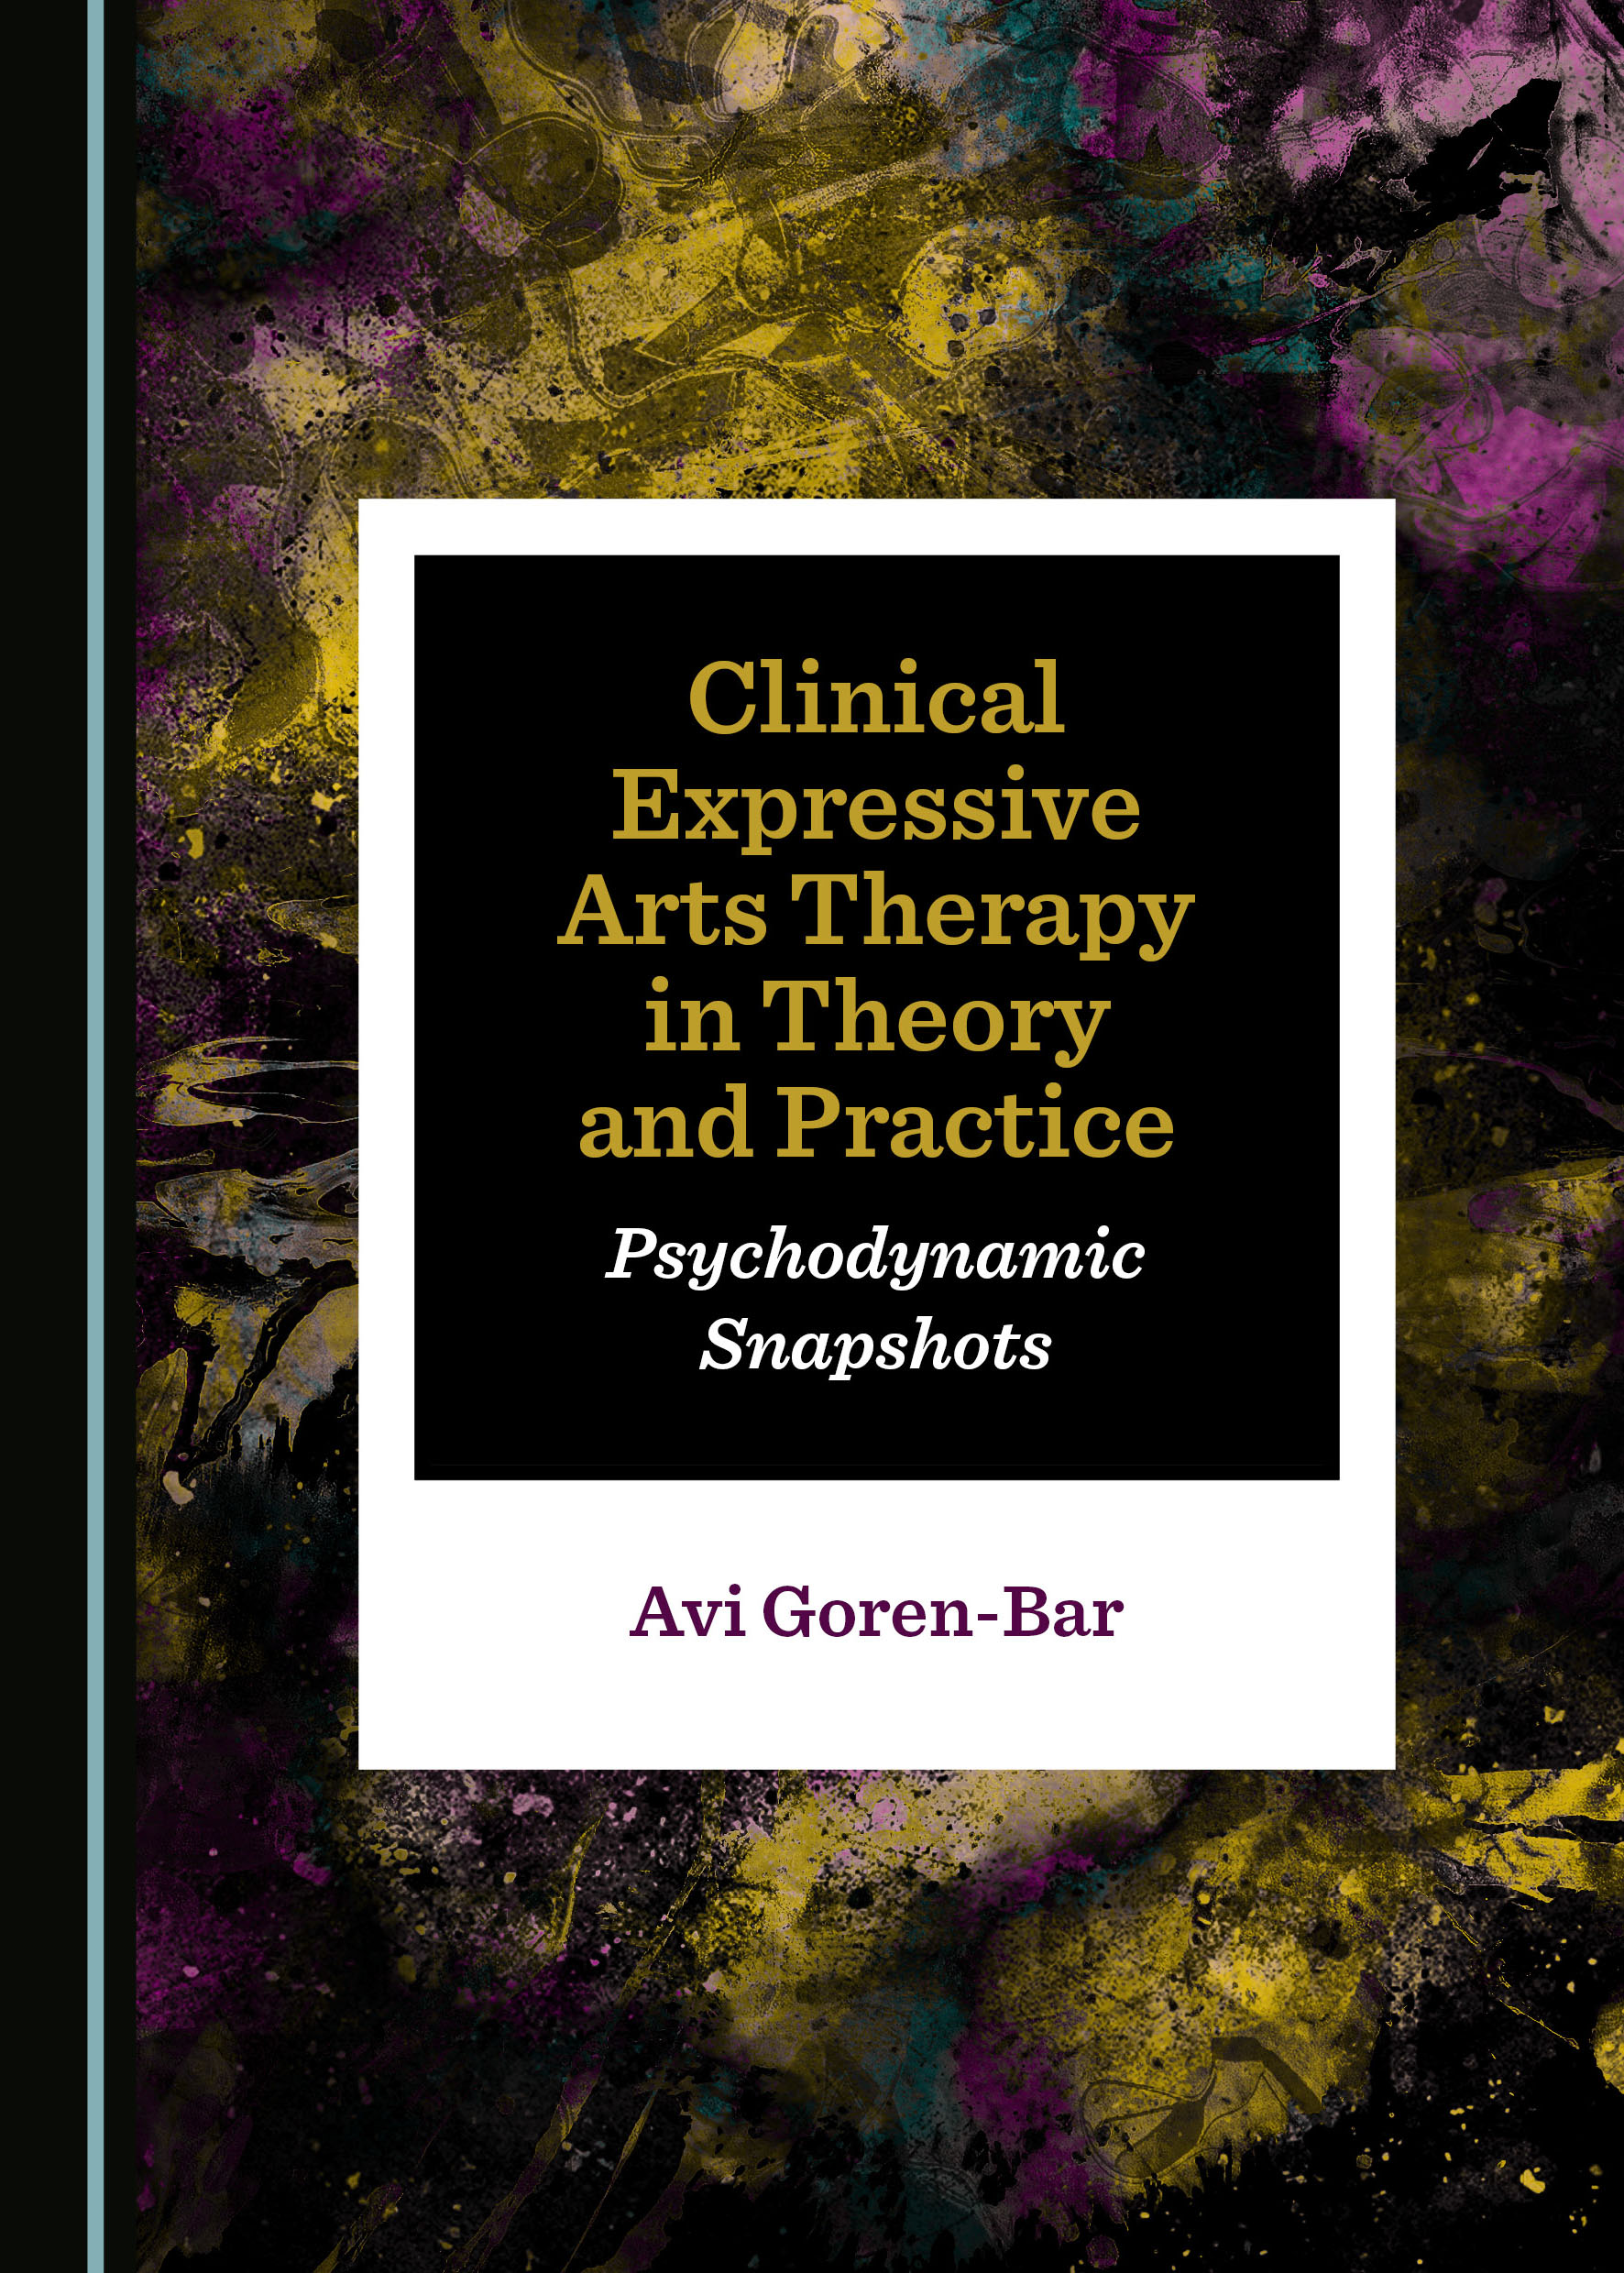 Clinical Expressive Arts Therapy in Theory and Practice: Psychodynamic Snapshots